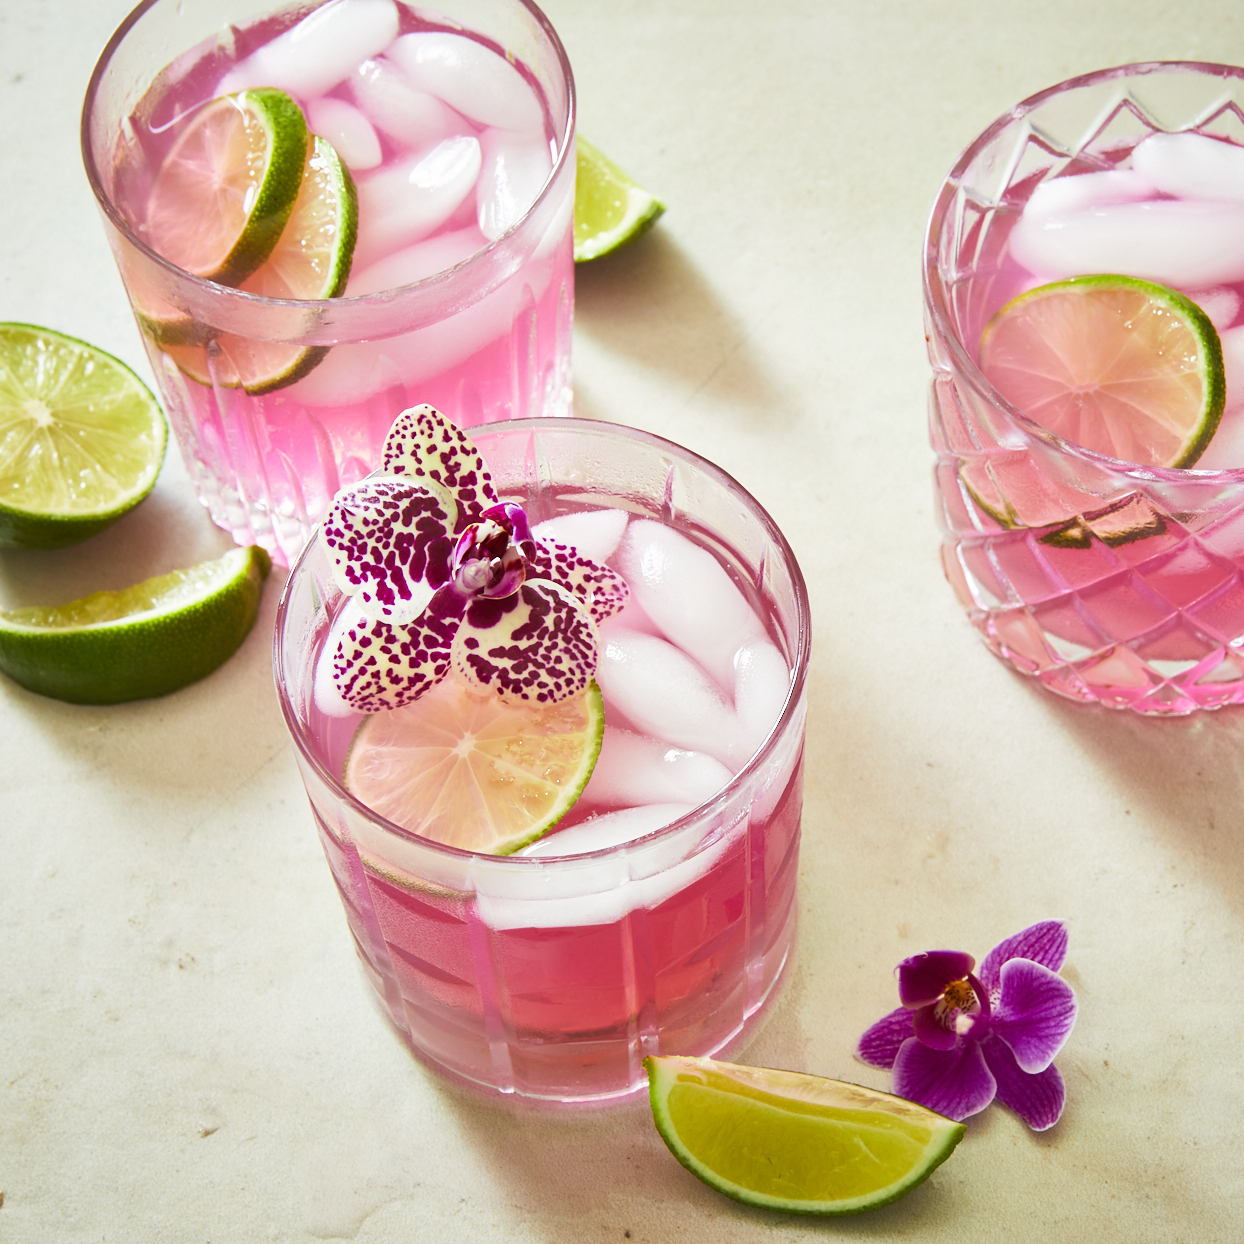 Prickly Pear Margaritas Trusted Brands